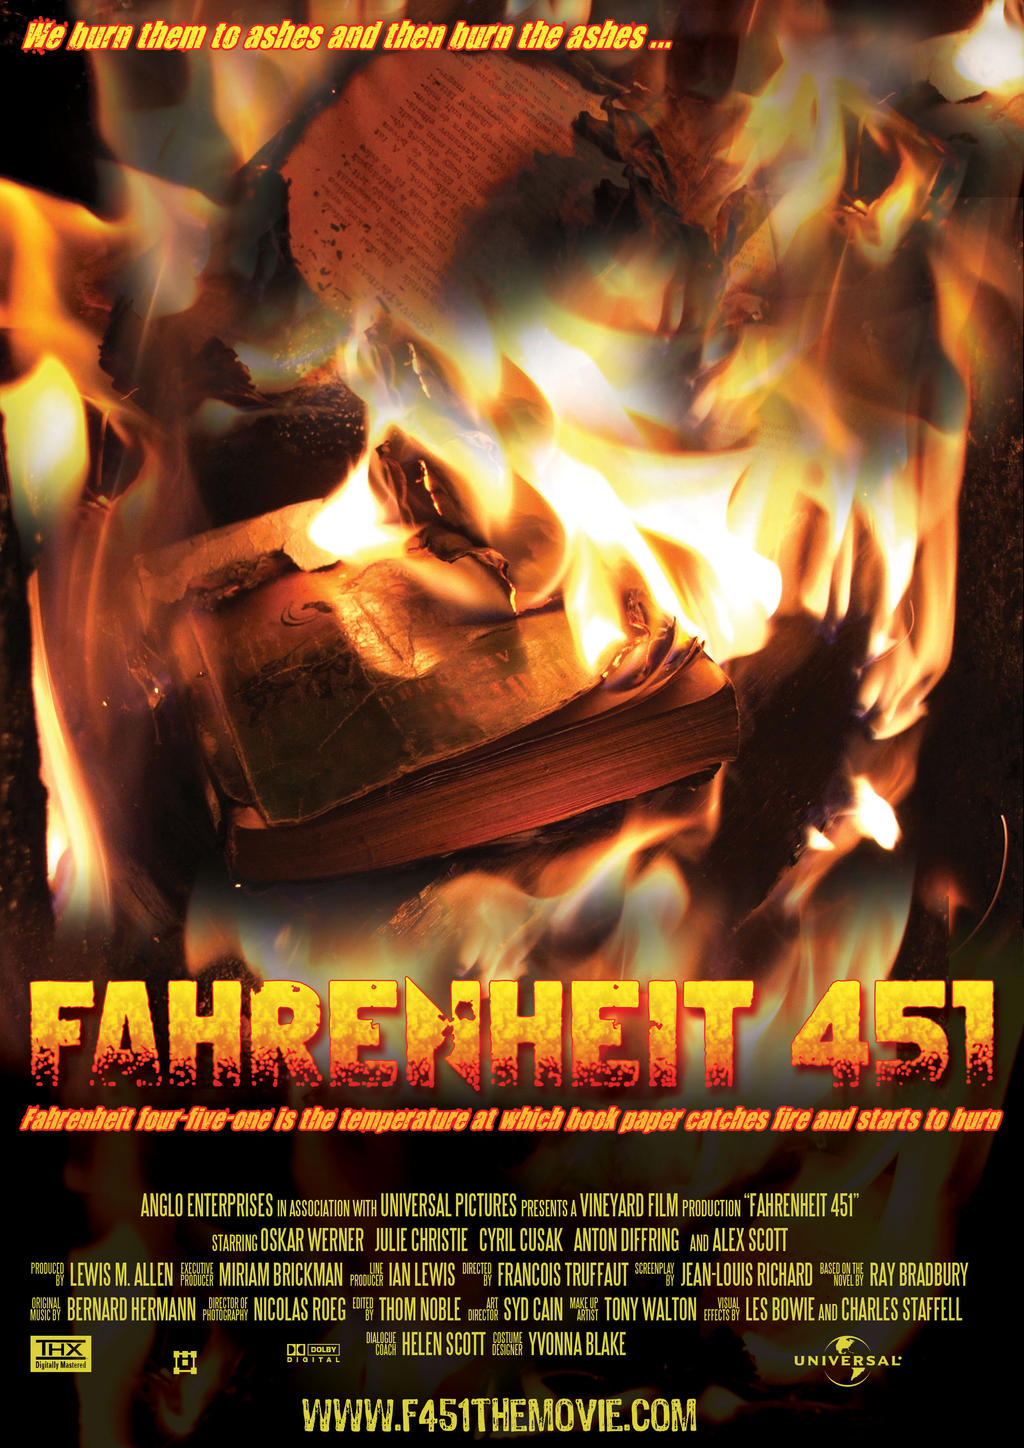 fahrenheit 451 Ray bradbury's internationally acclaimed novel fahrenheit 451 is a masterwork of twentieth-century literature set in a bleak, dystopian future.